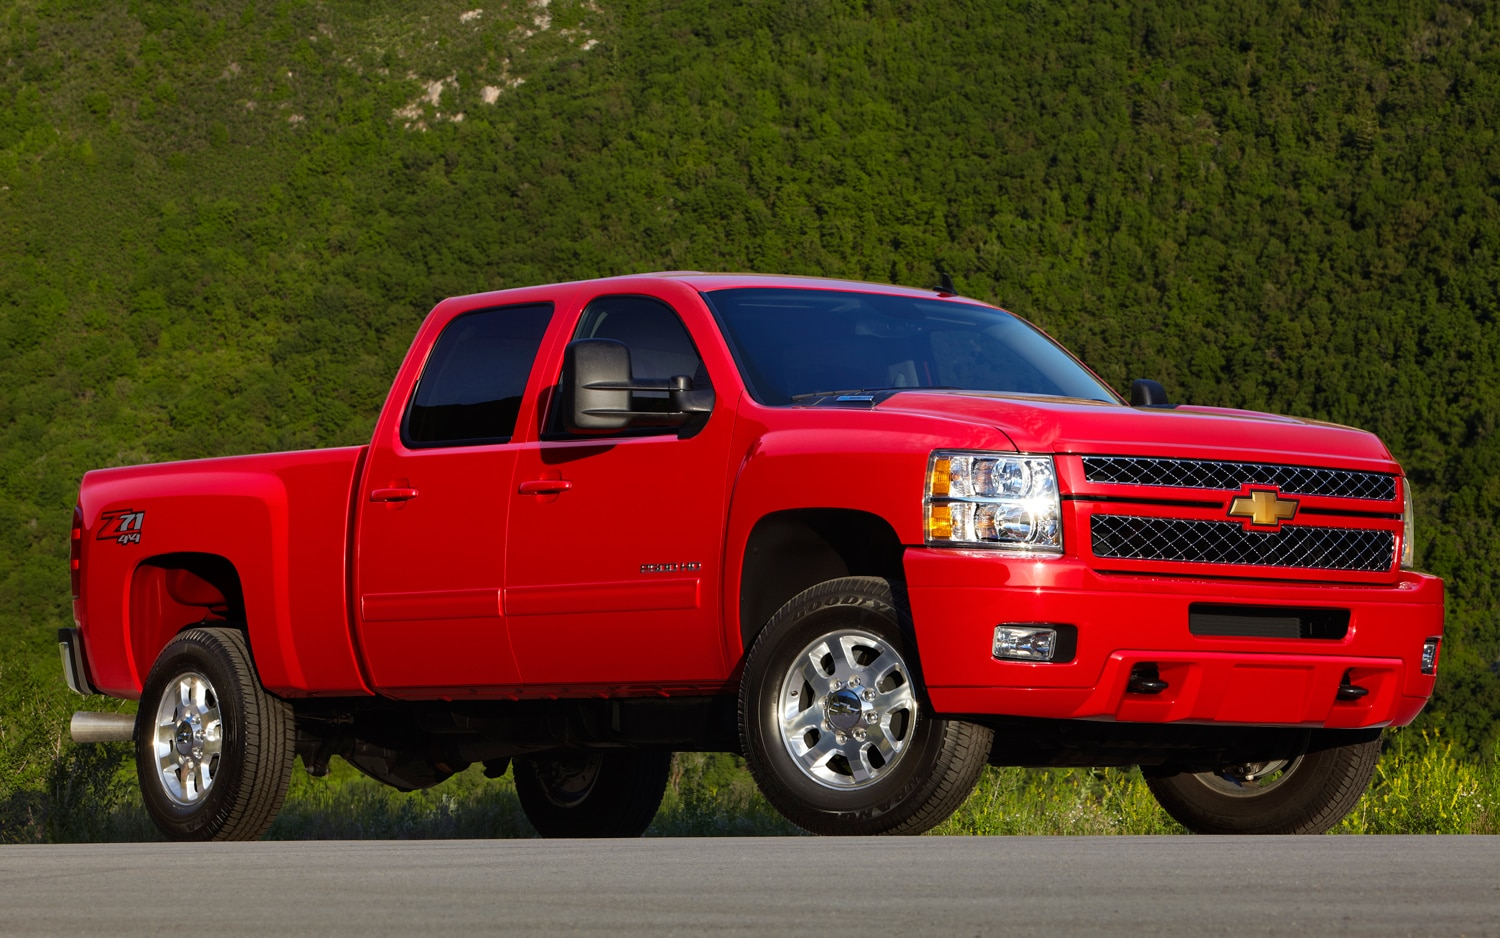 2012 Chevrolet Silverado Gets with New Appearance Packages ...